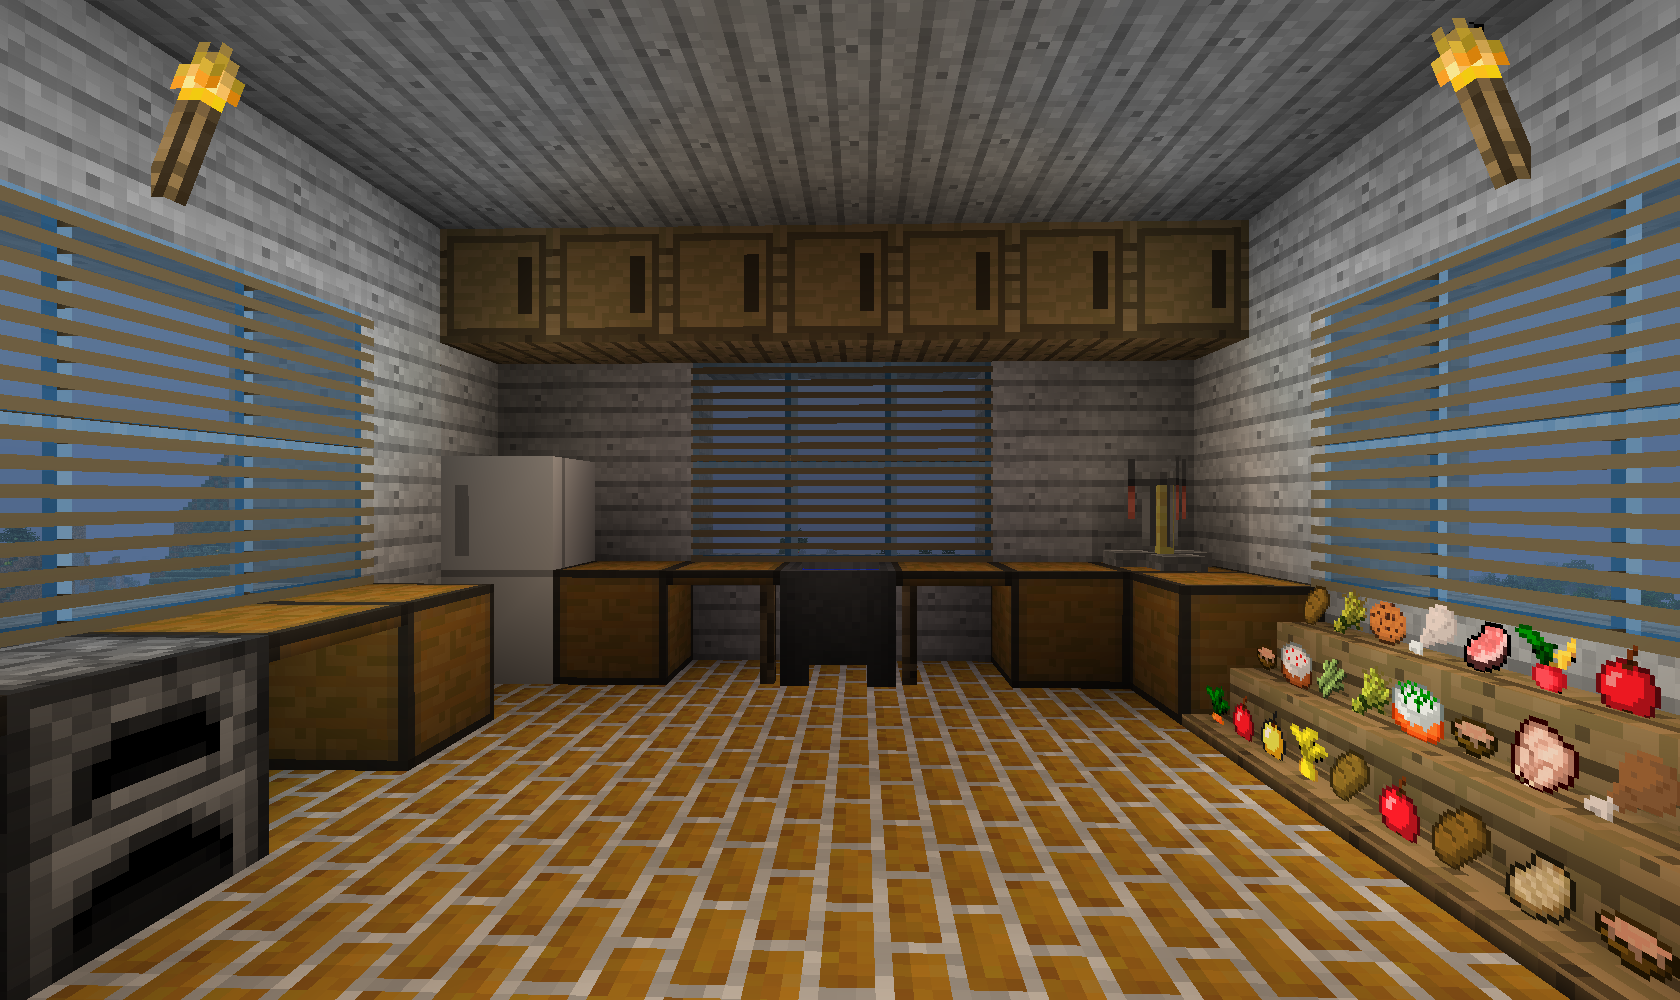 Minecraft Kitchen Only Will Use Item Frames For The Food So They